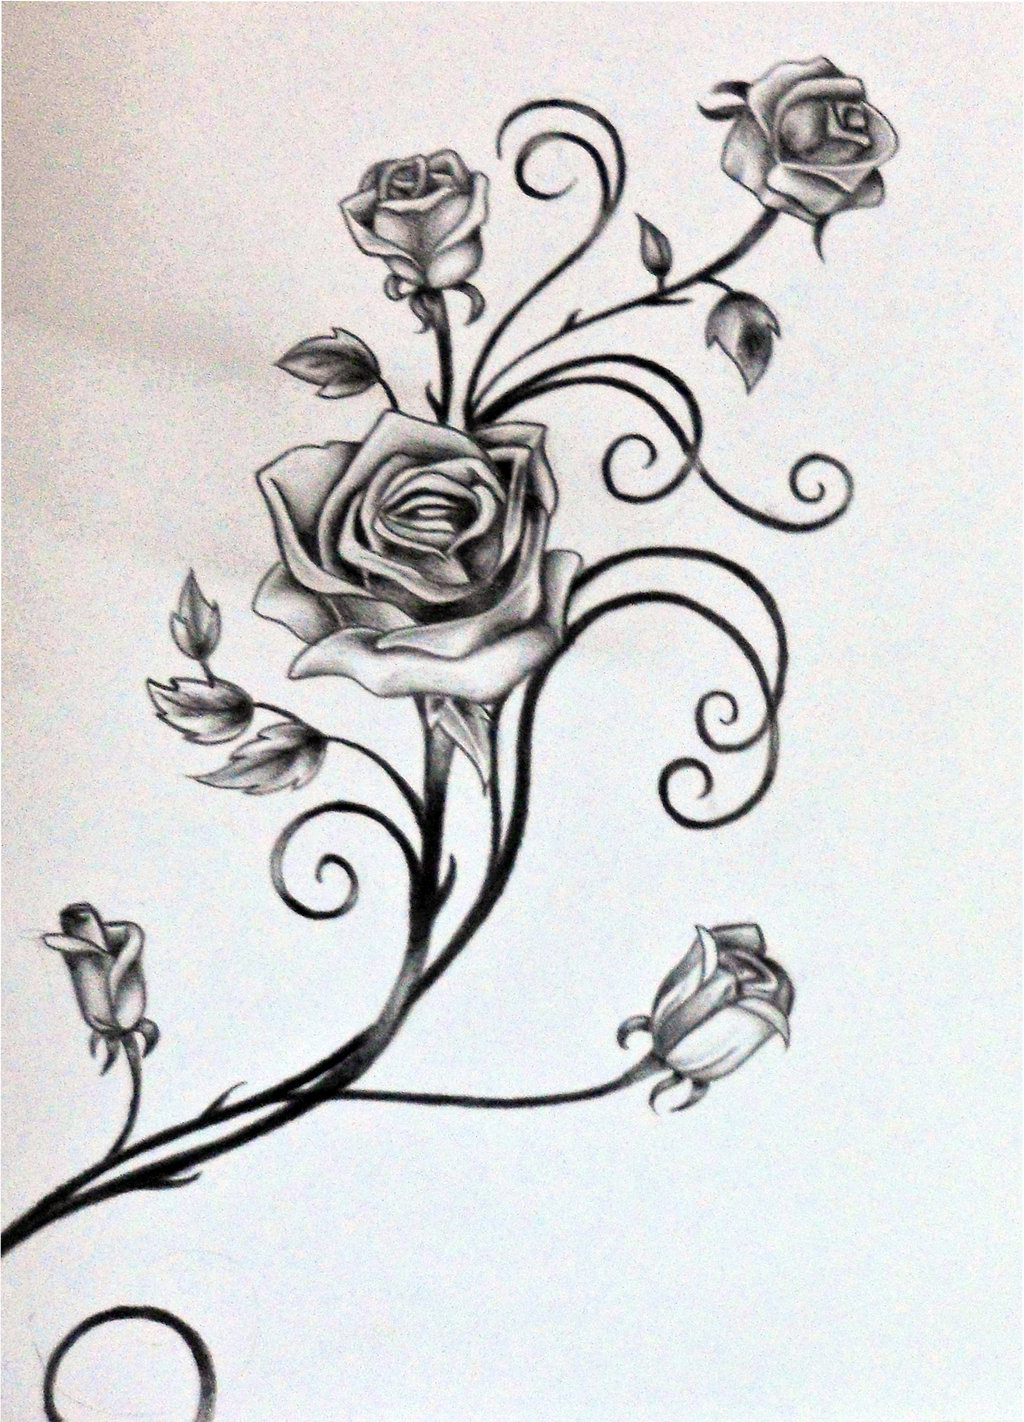 Drawn vine Vines Vine by Drawings Roses